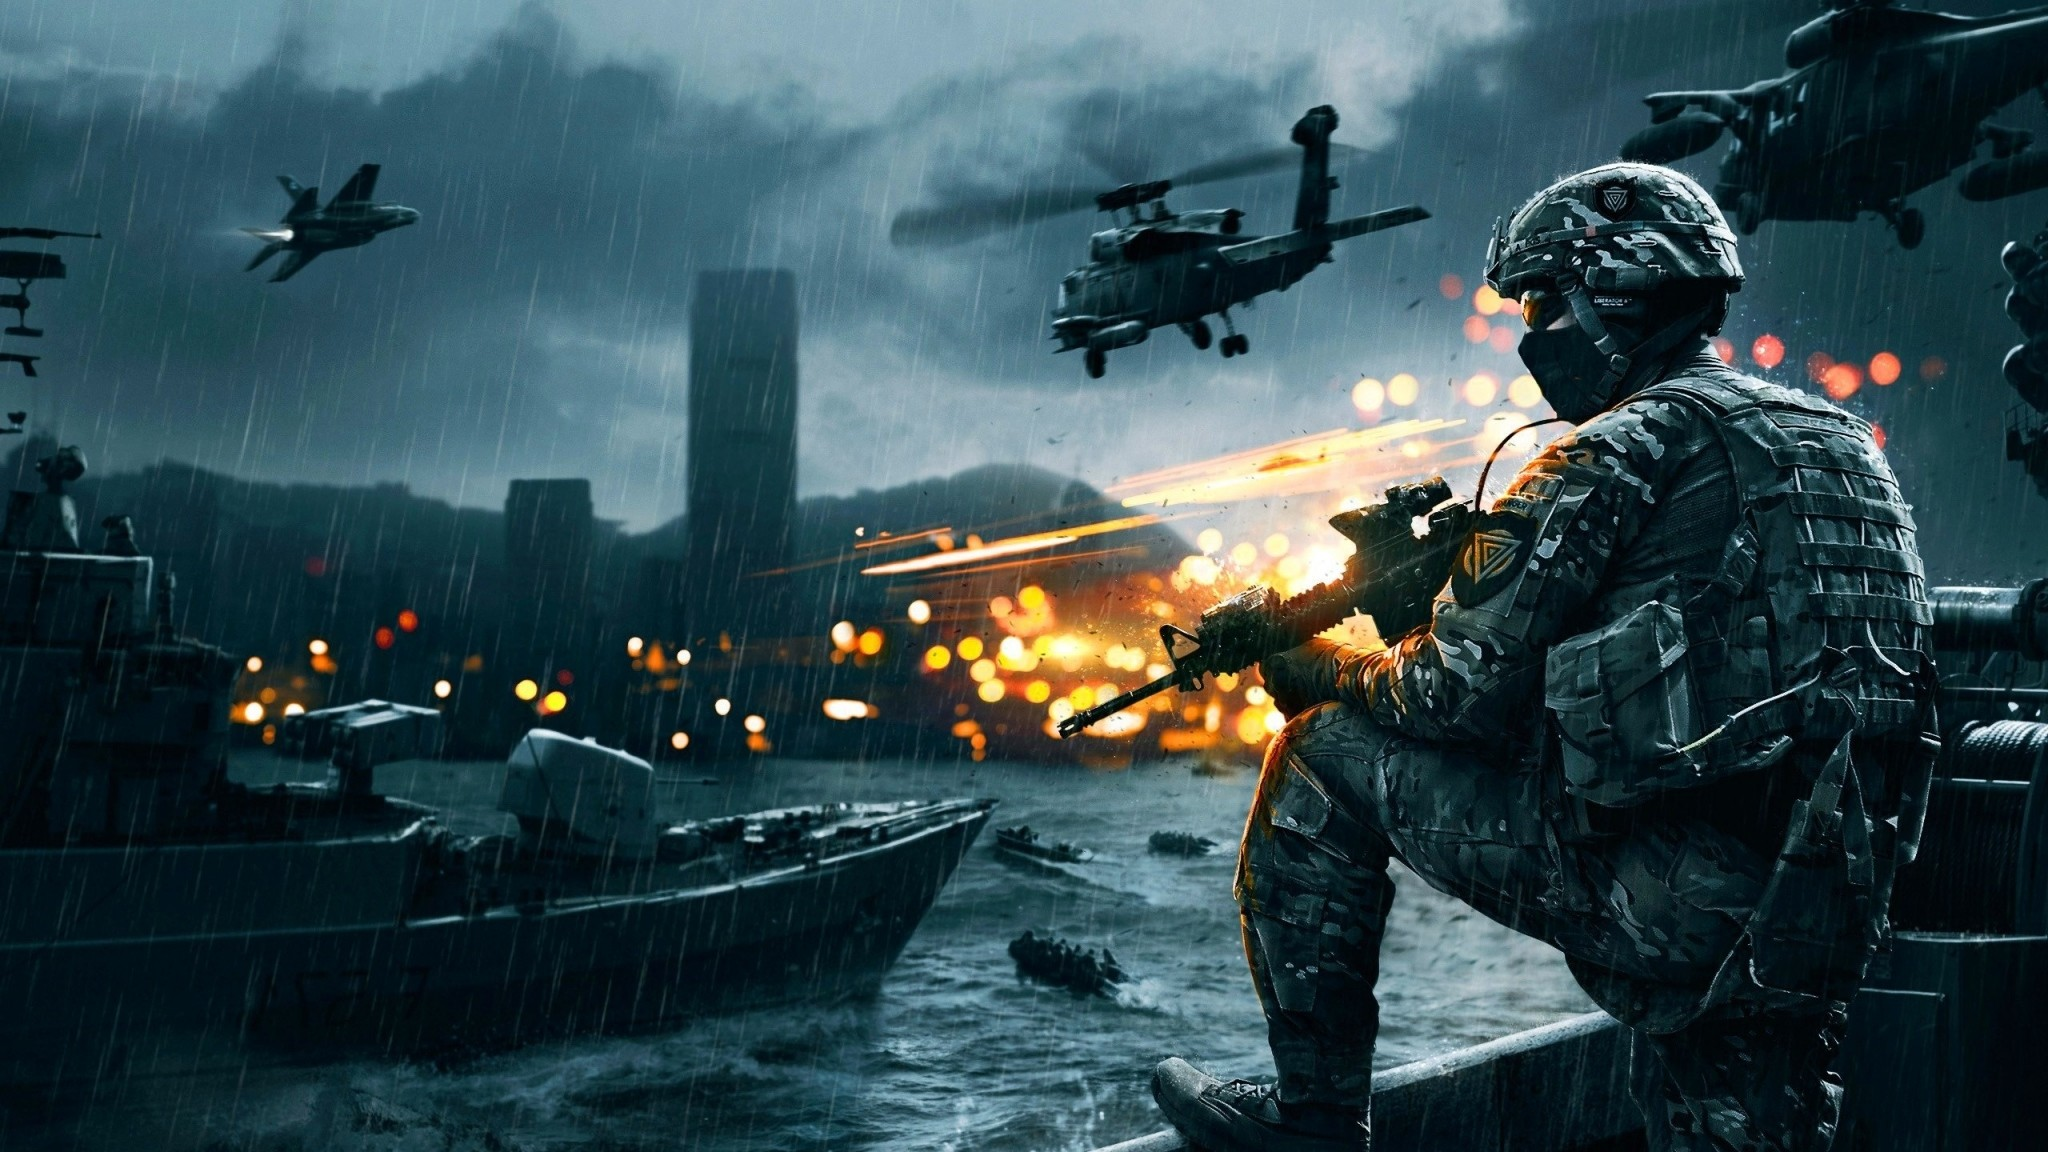 2048x1152 Preview wallpaper battlefield 4, game, ea digital illusions ce